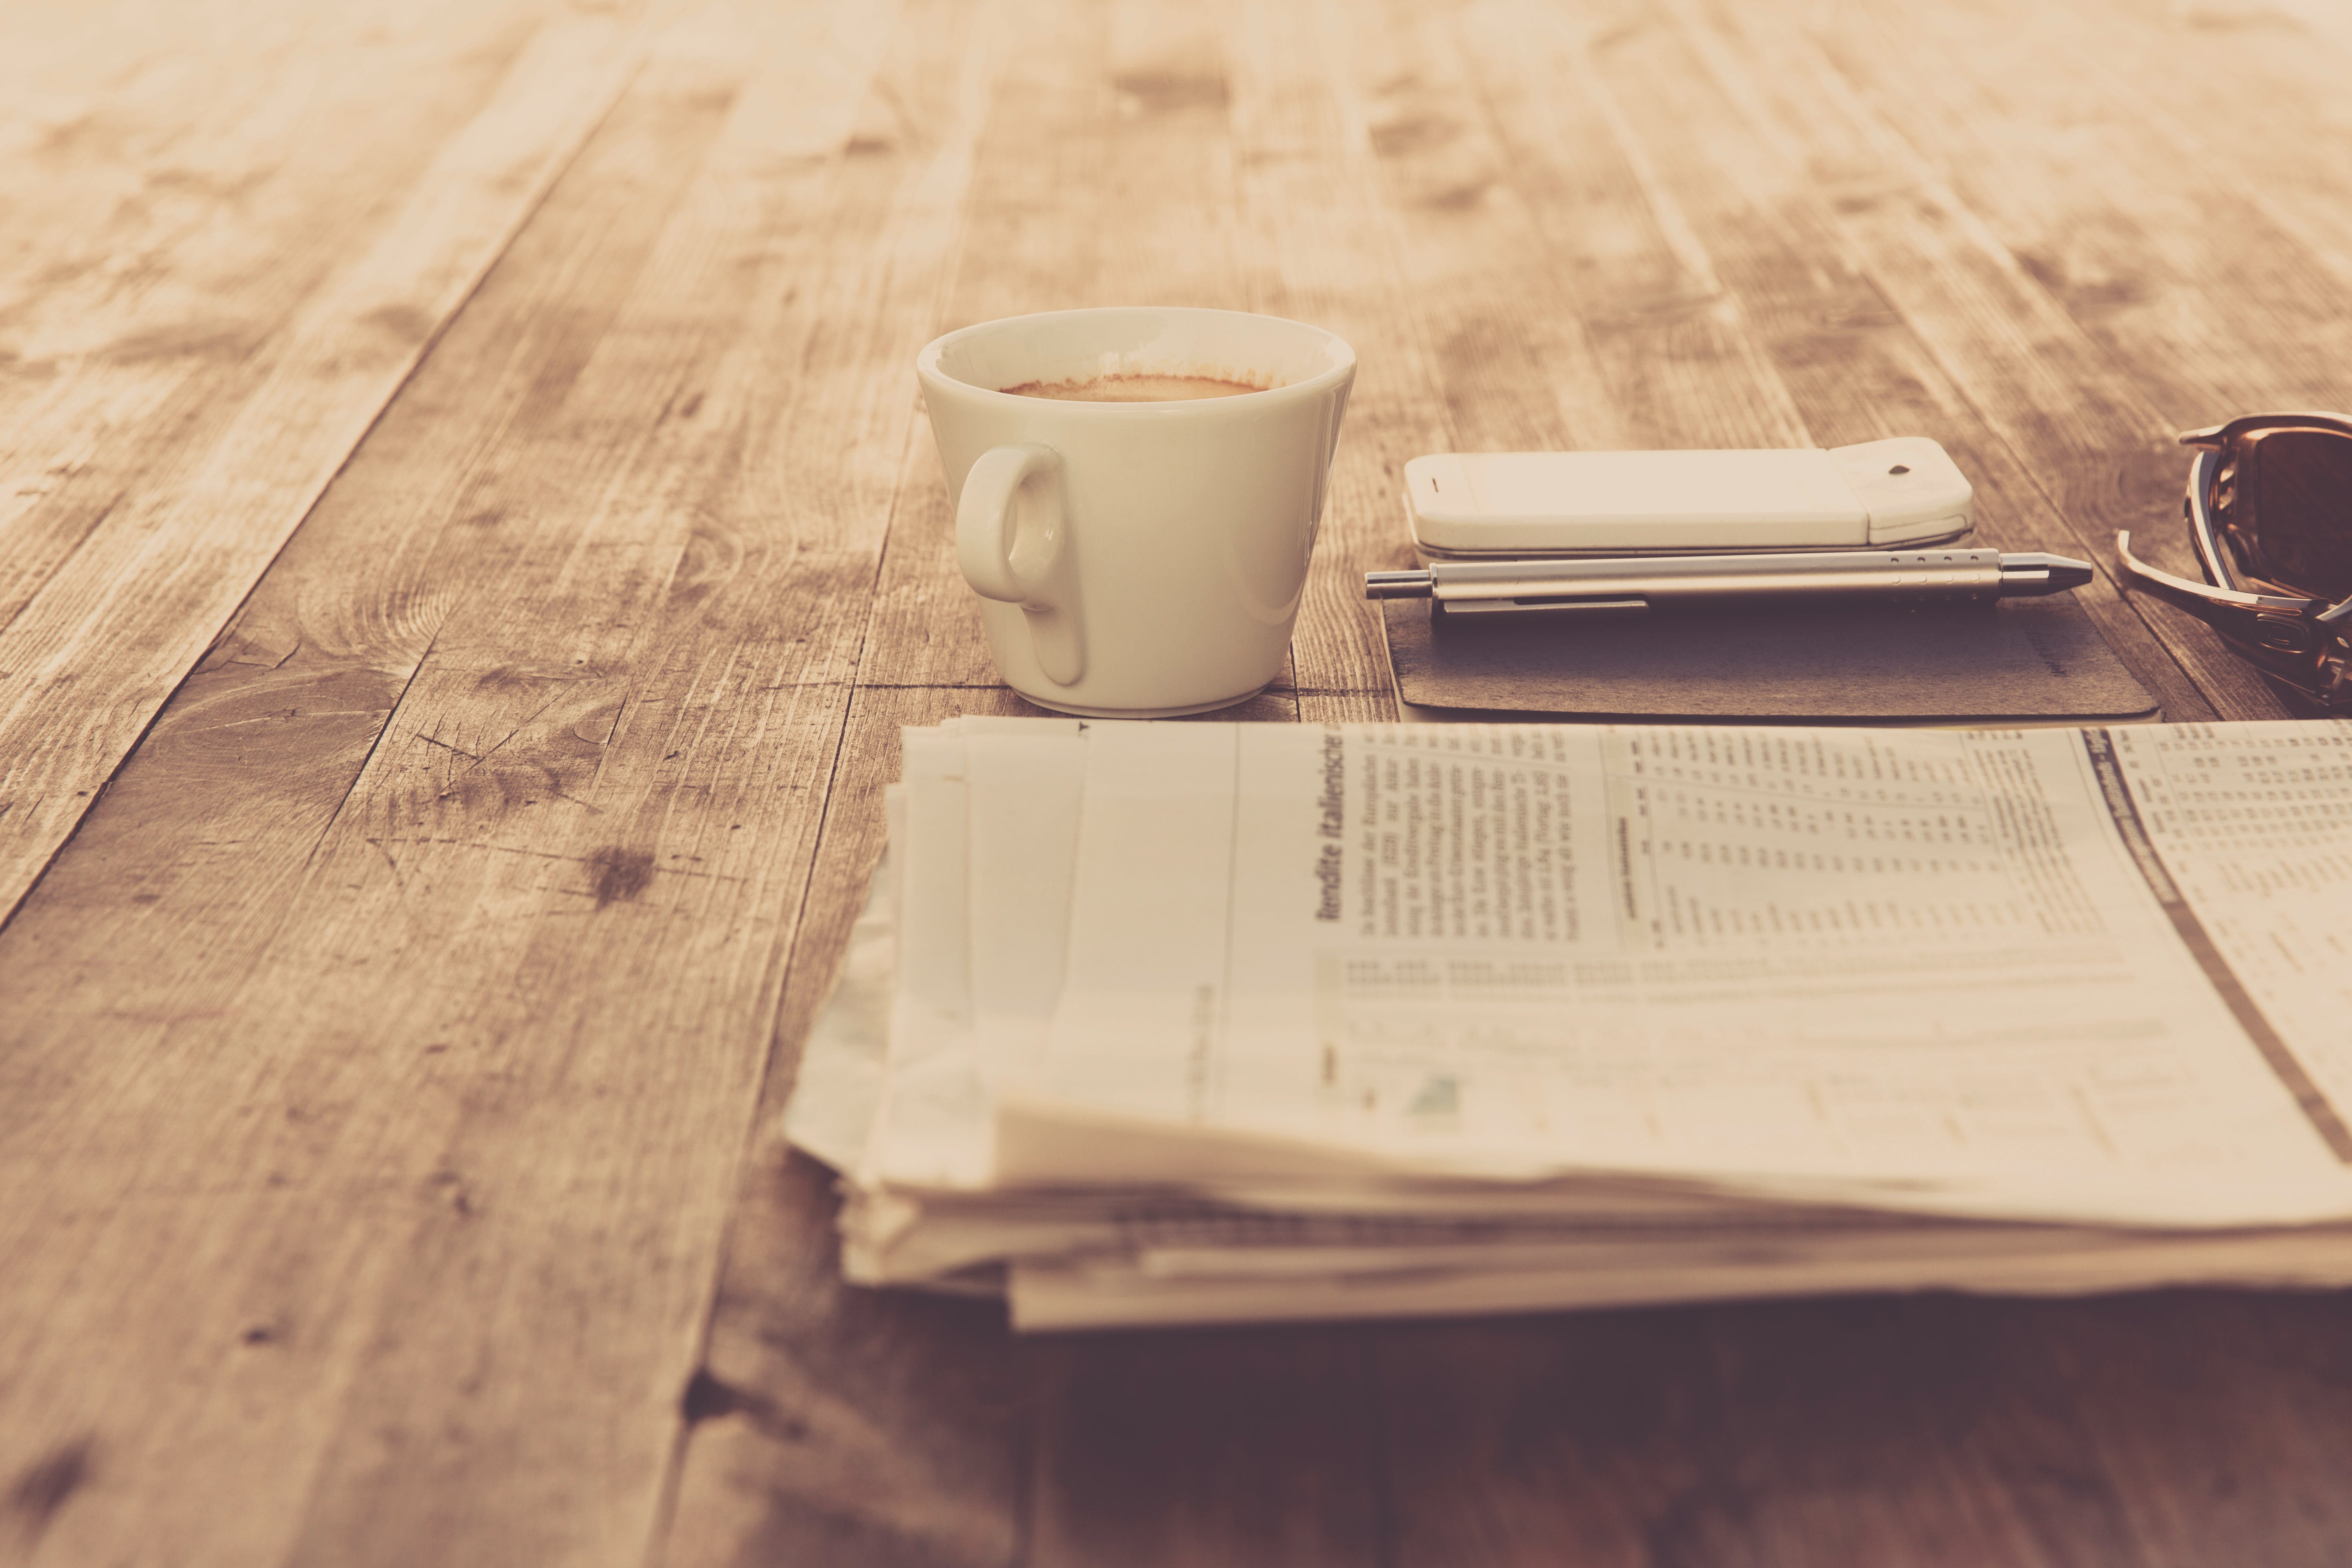 Newspaper and White Ceramic Cup on Brown Wooden Table